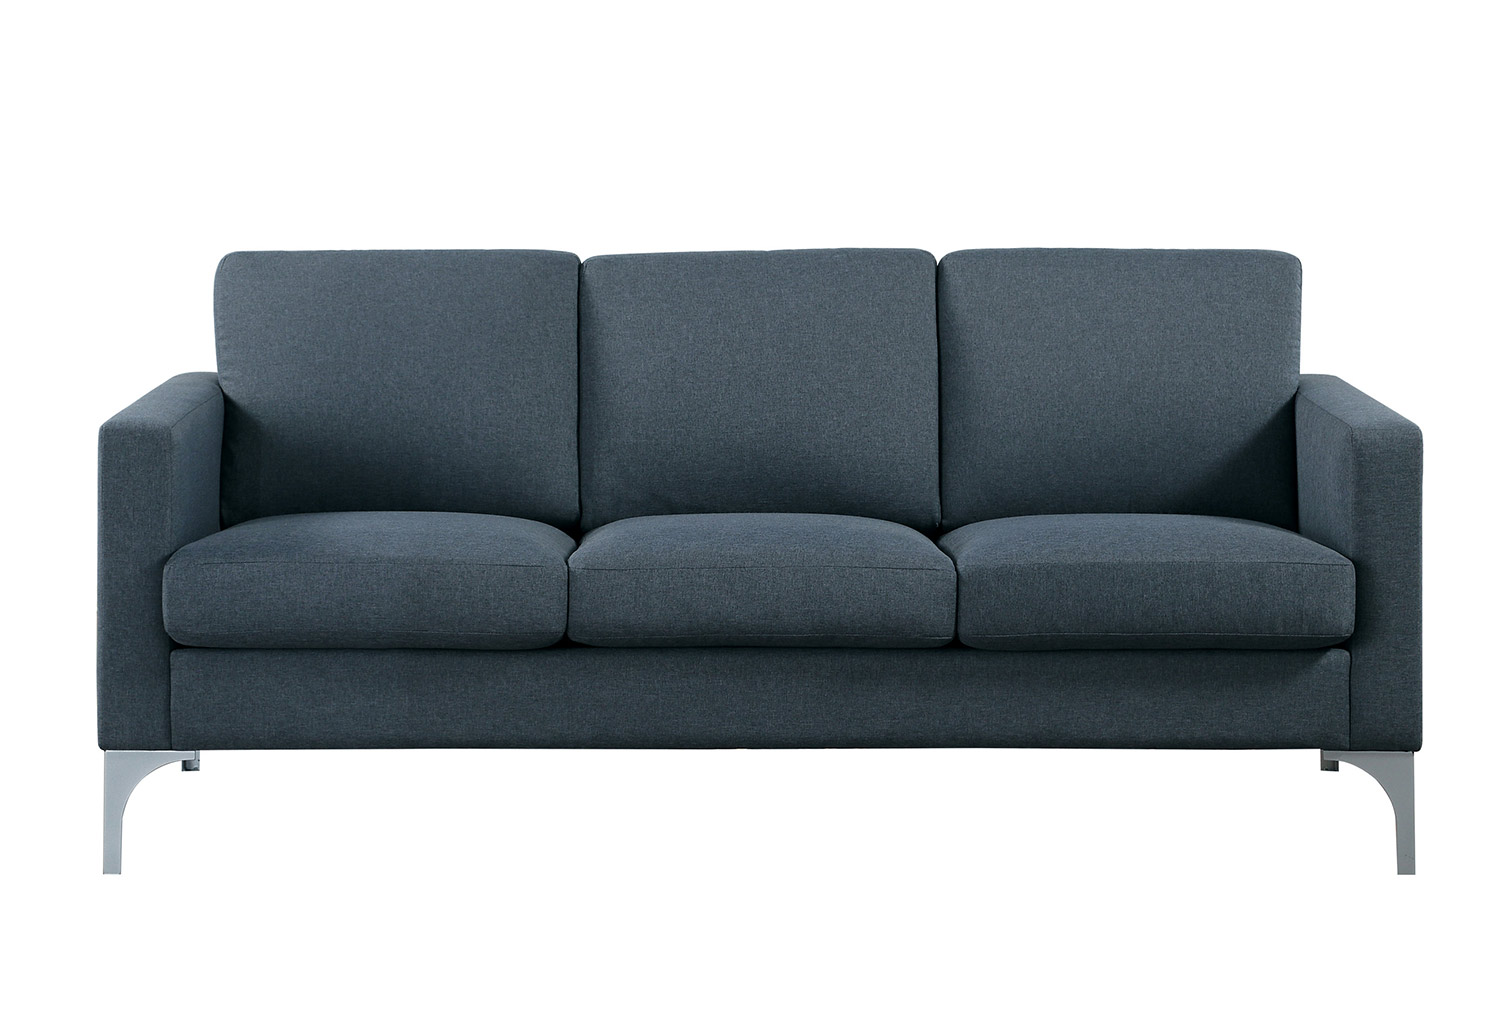 Homelegance Soho Sofa - Dark Gray - Brownish Gray